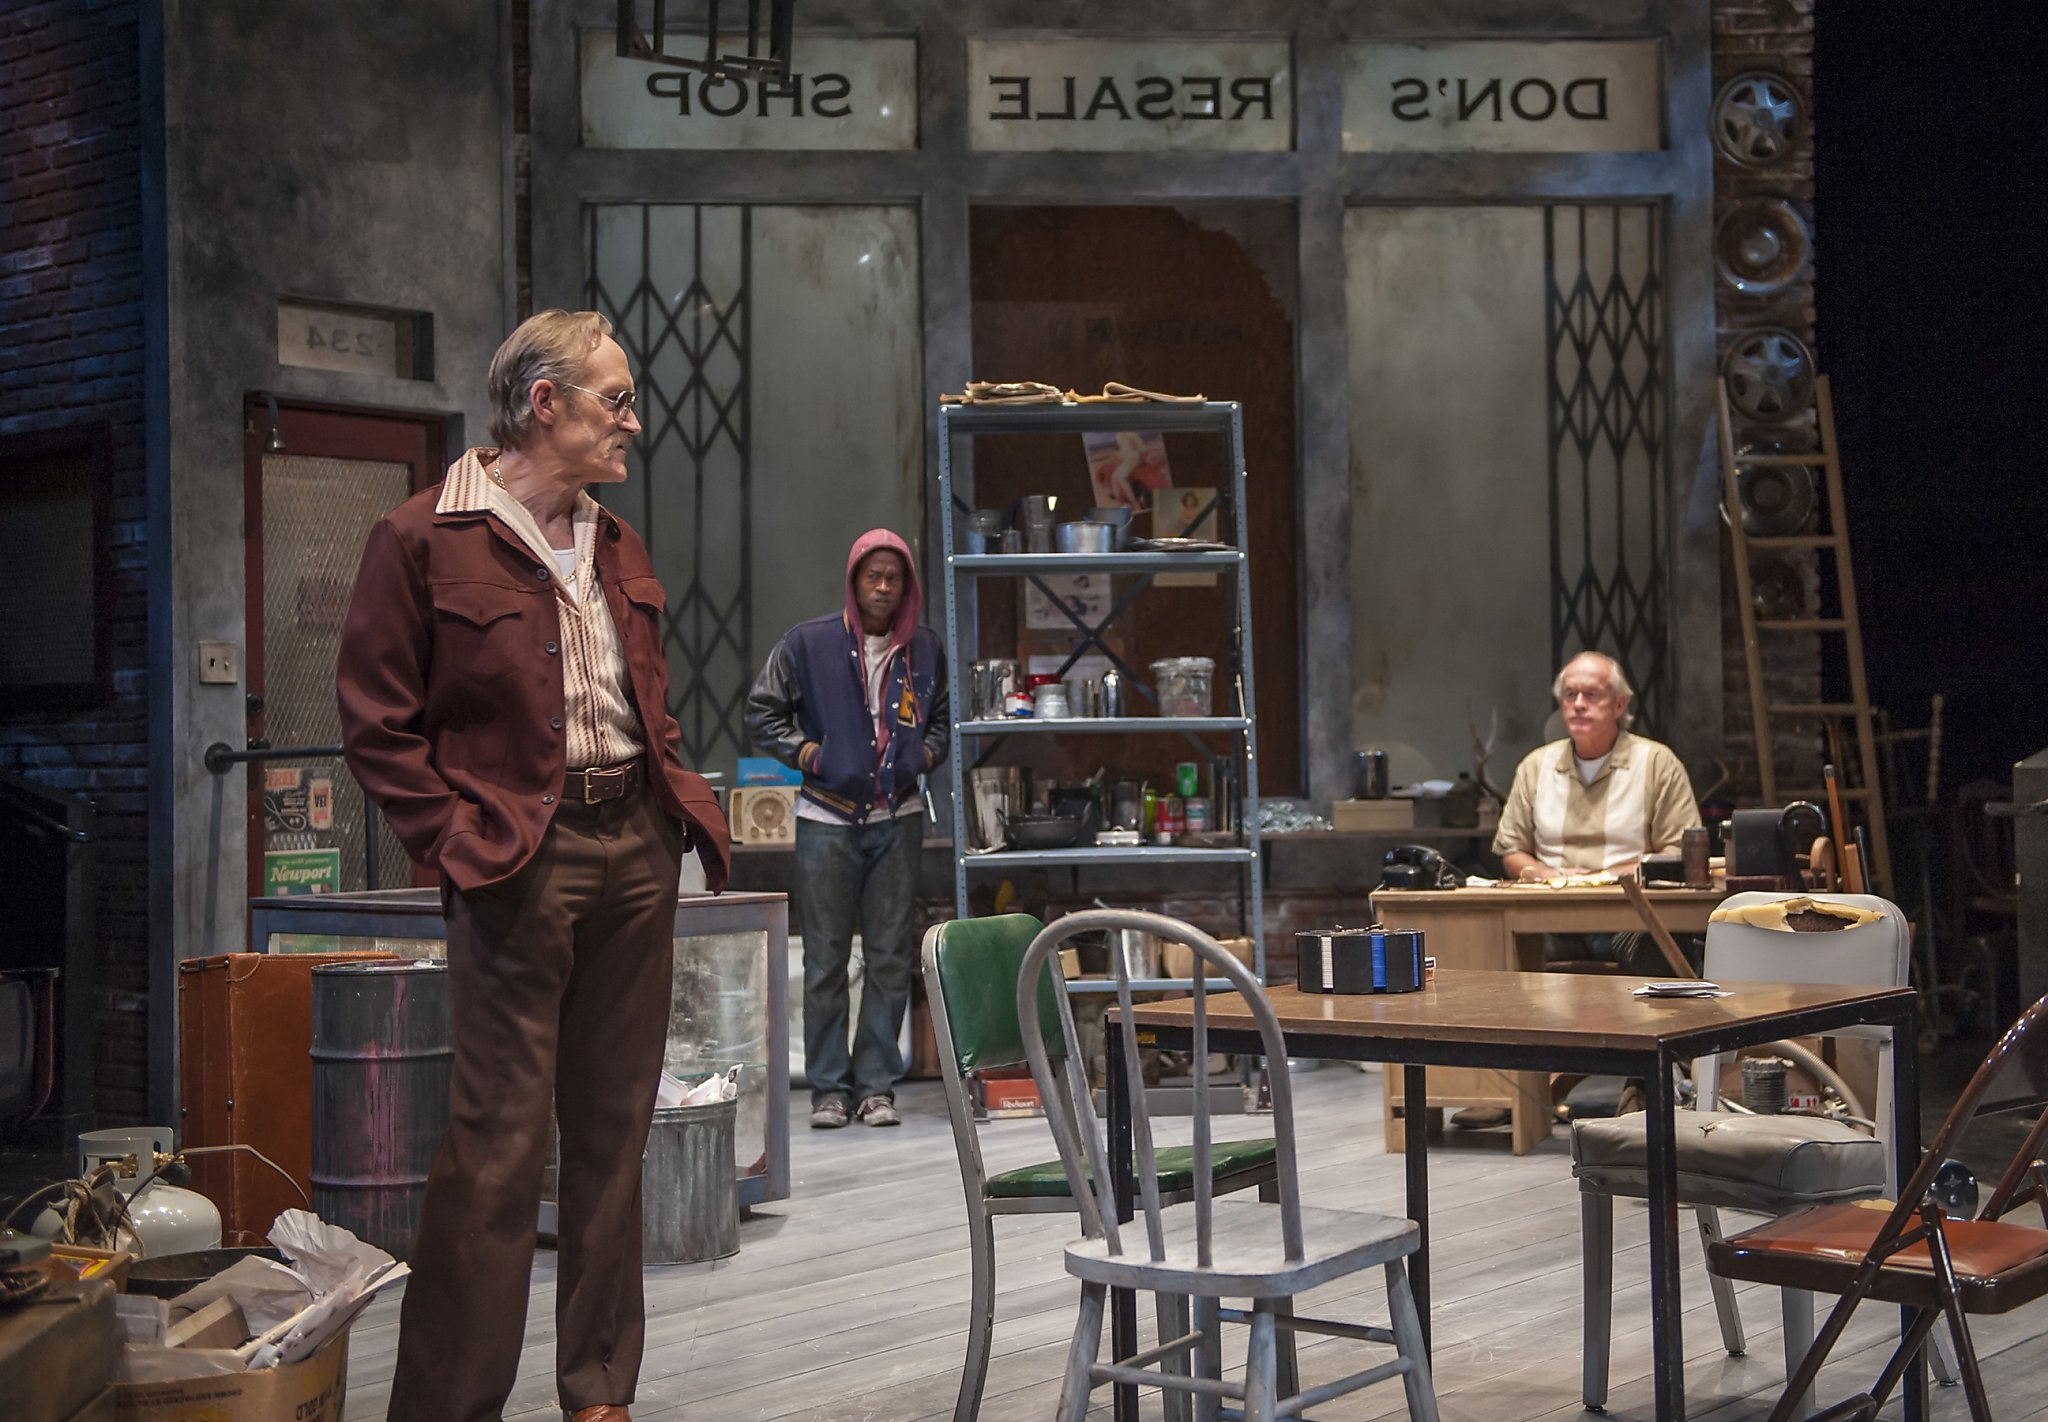 a review of american buffalo American buffalo offers an absorbing and revealing portrait of men under pressure, anxious to get ahead but inarticulate about their deepest thoughts and feelingsthat's the forte of playwright david mamet, whose national career was launched in part by this 1975 playdeaf west theatre.